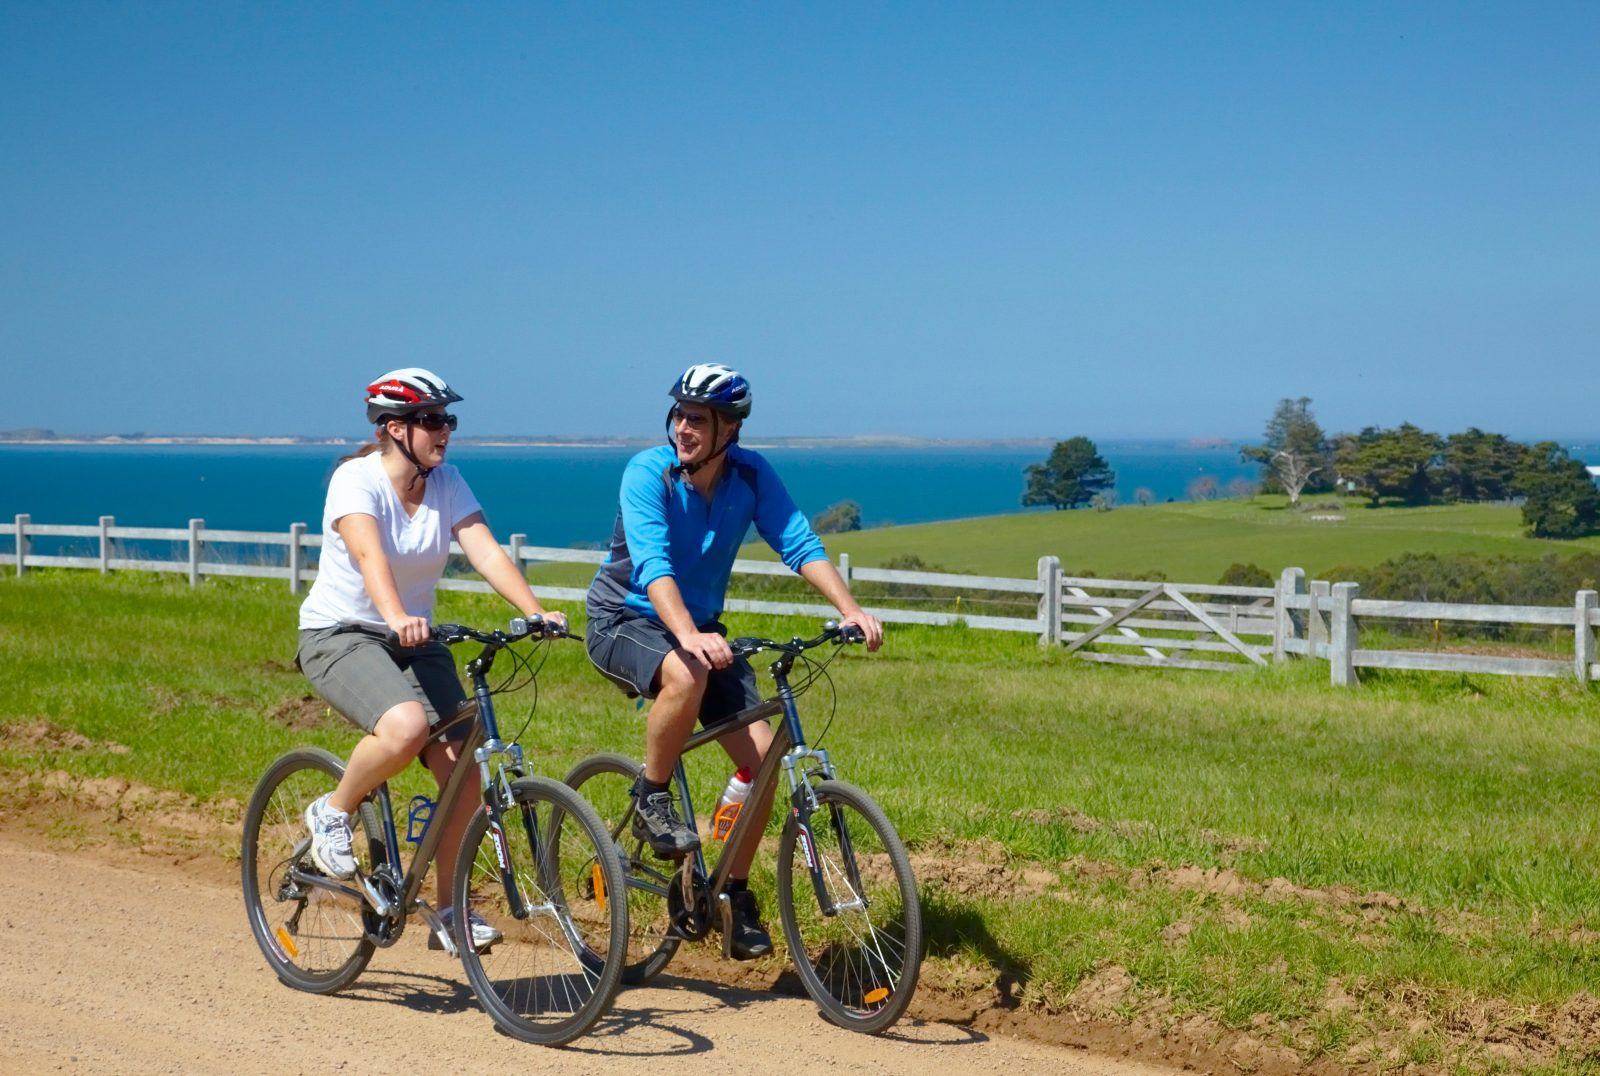 cycling along the coastal region of westernport bay on the mornington peninsula